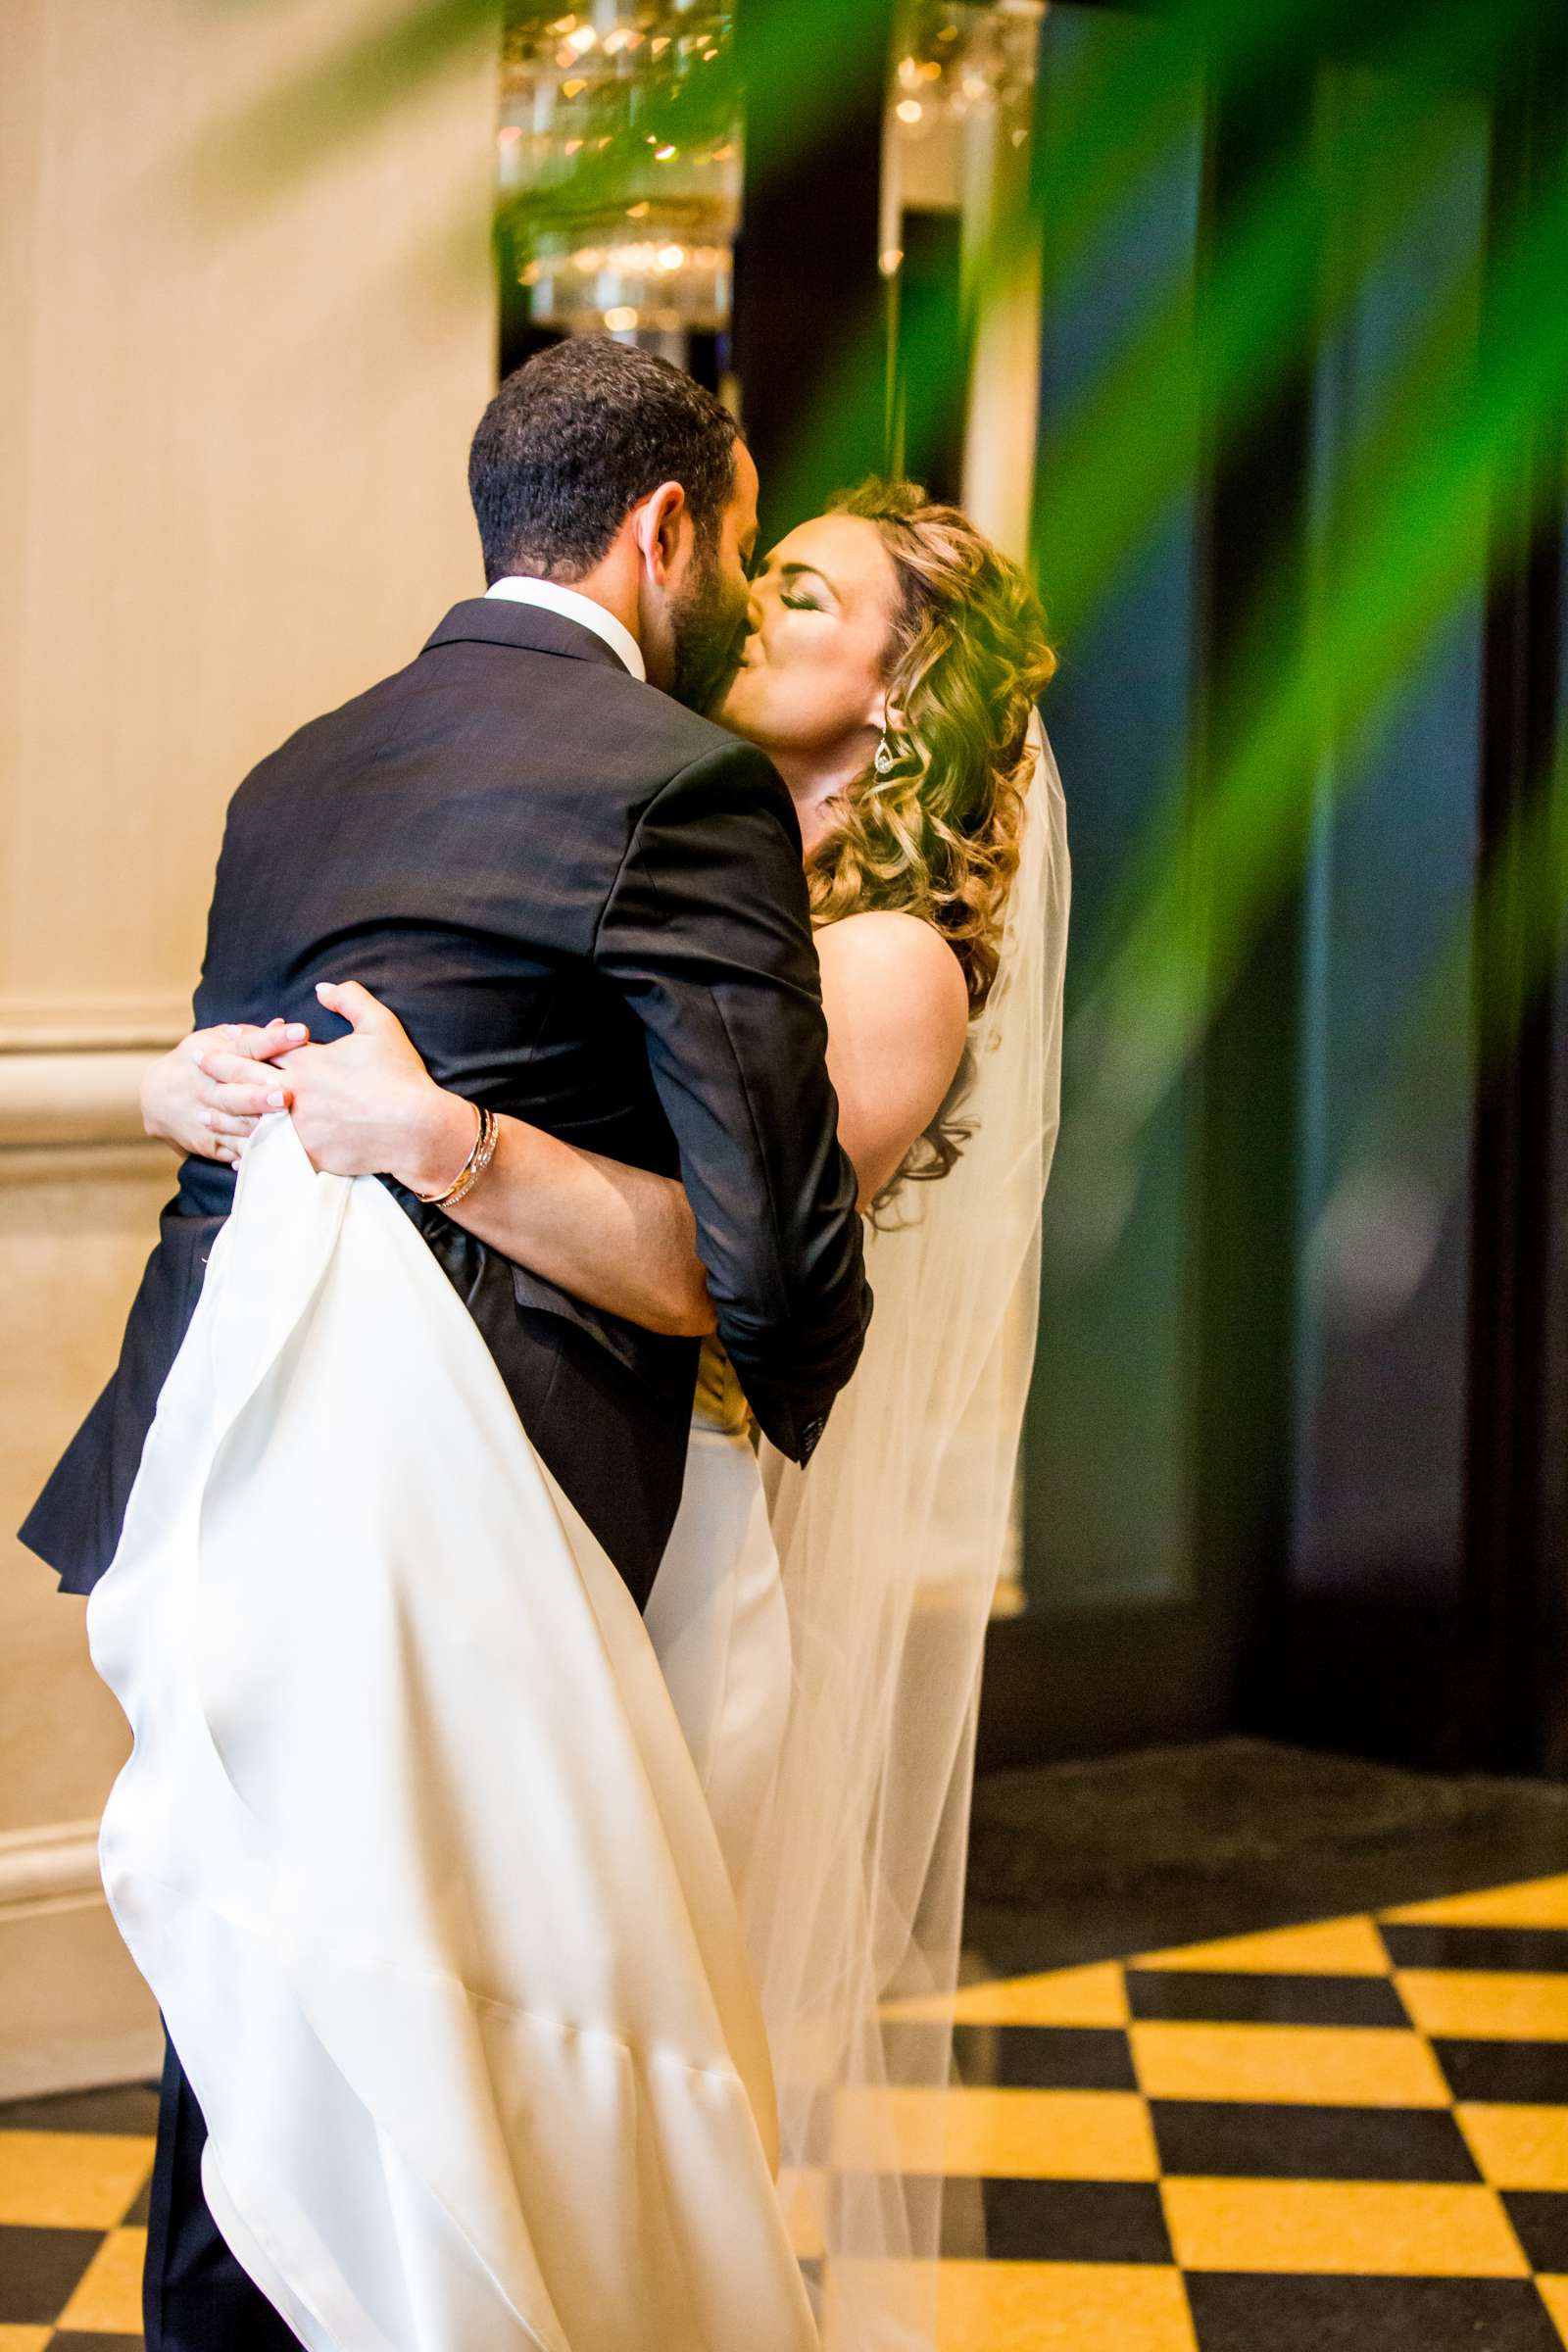 First Look at San Diego Museum of Art Wedding coordinated by First Comes Love Weddings & Events, Ruthie and Larry Wedding Photo #236785 by True Photography